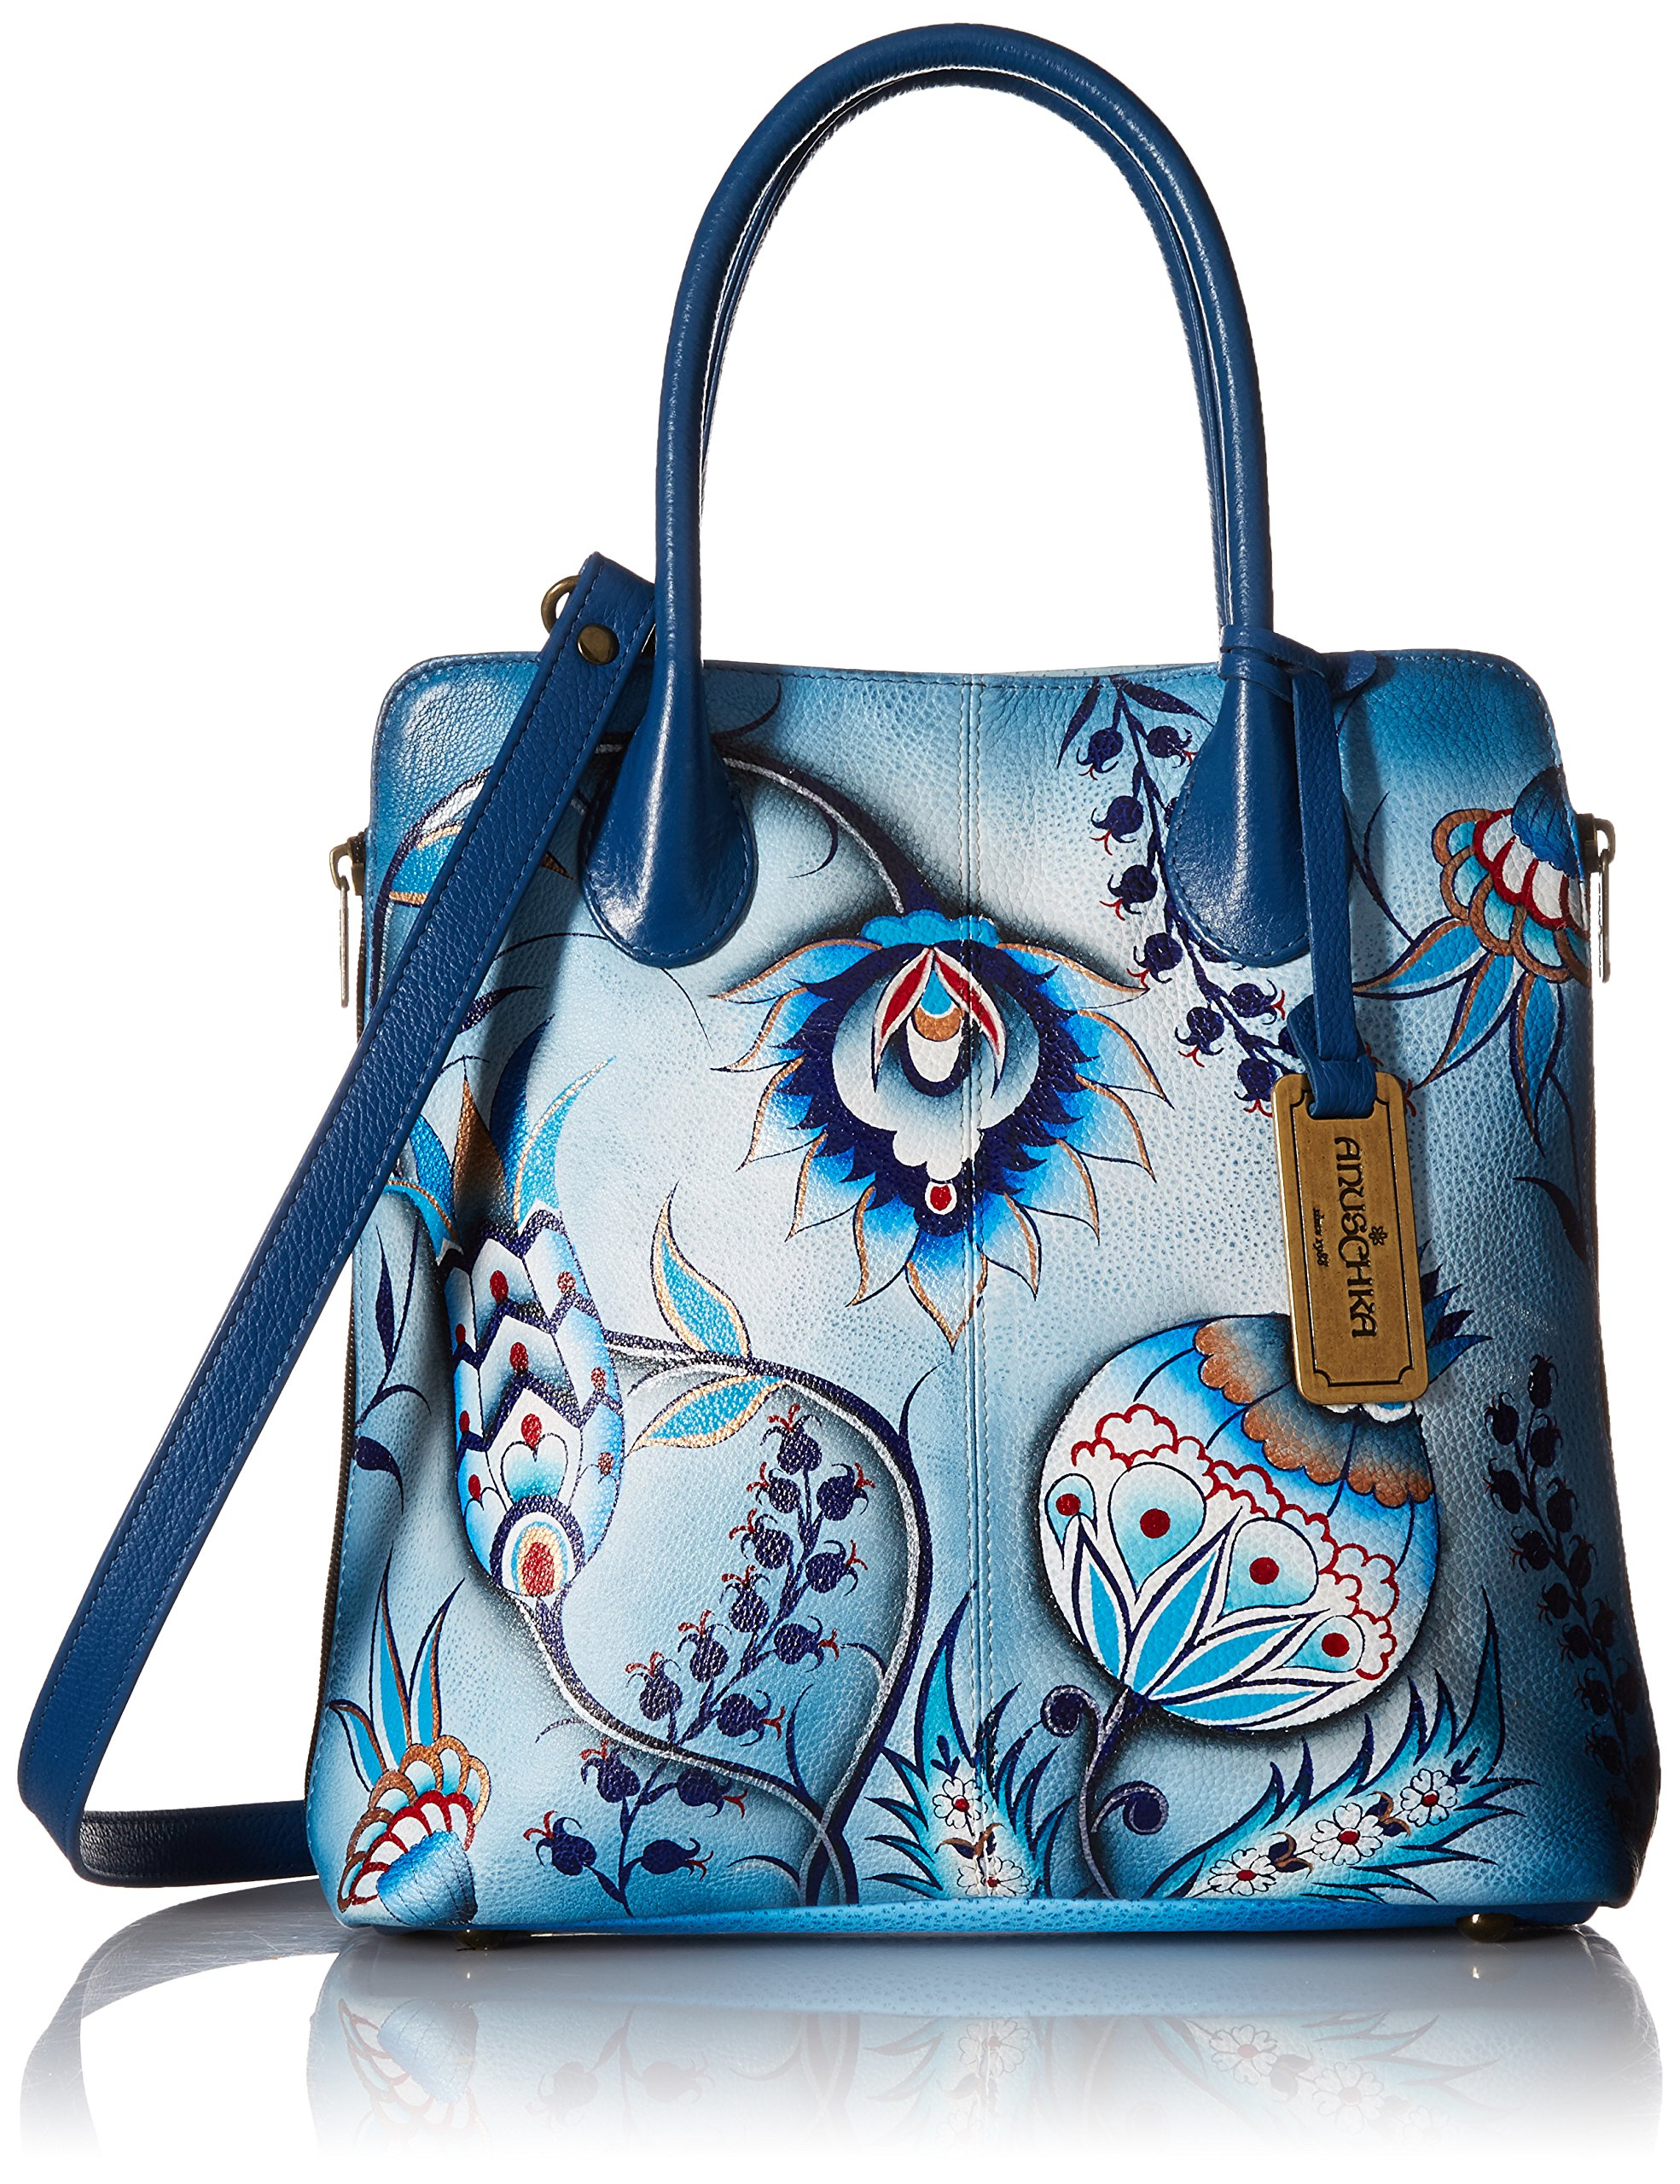 Anuschka Medium Expandable Convertible Tote Bewitching Blues, Bwb/Bewitching Blues